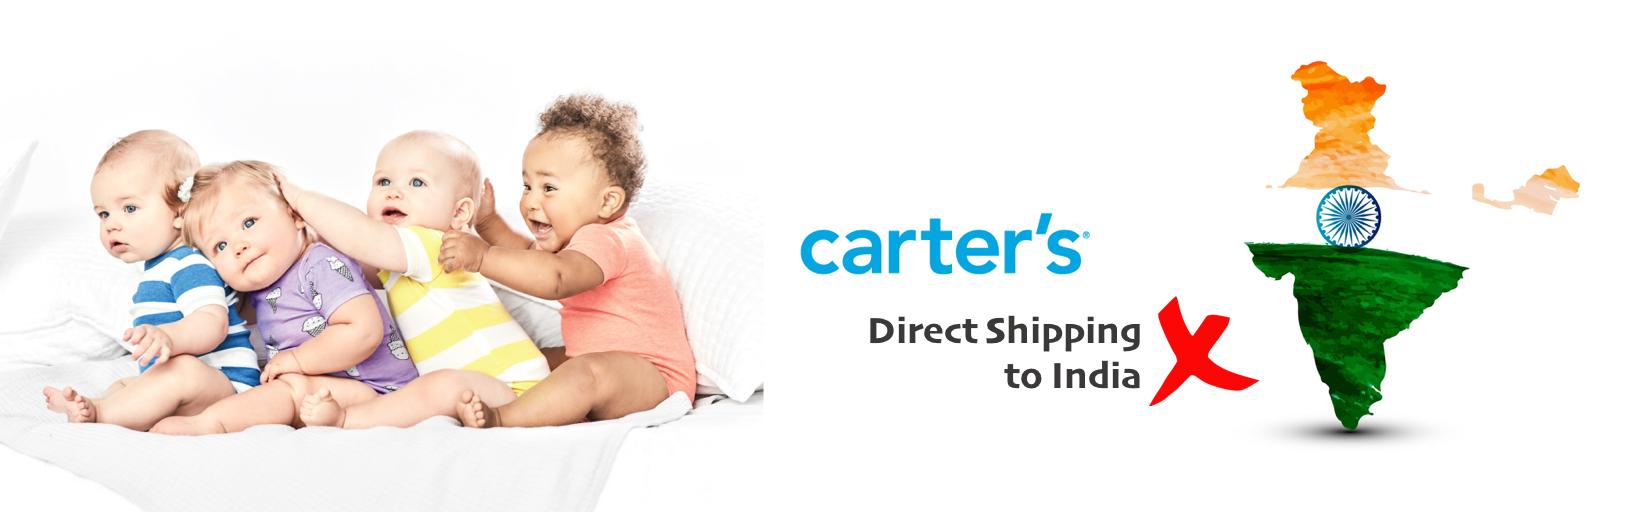 shop carter's ship to india